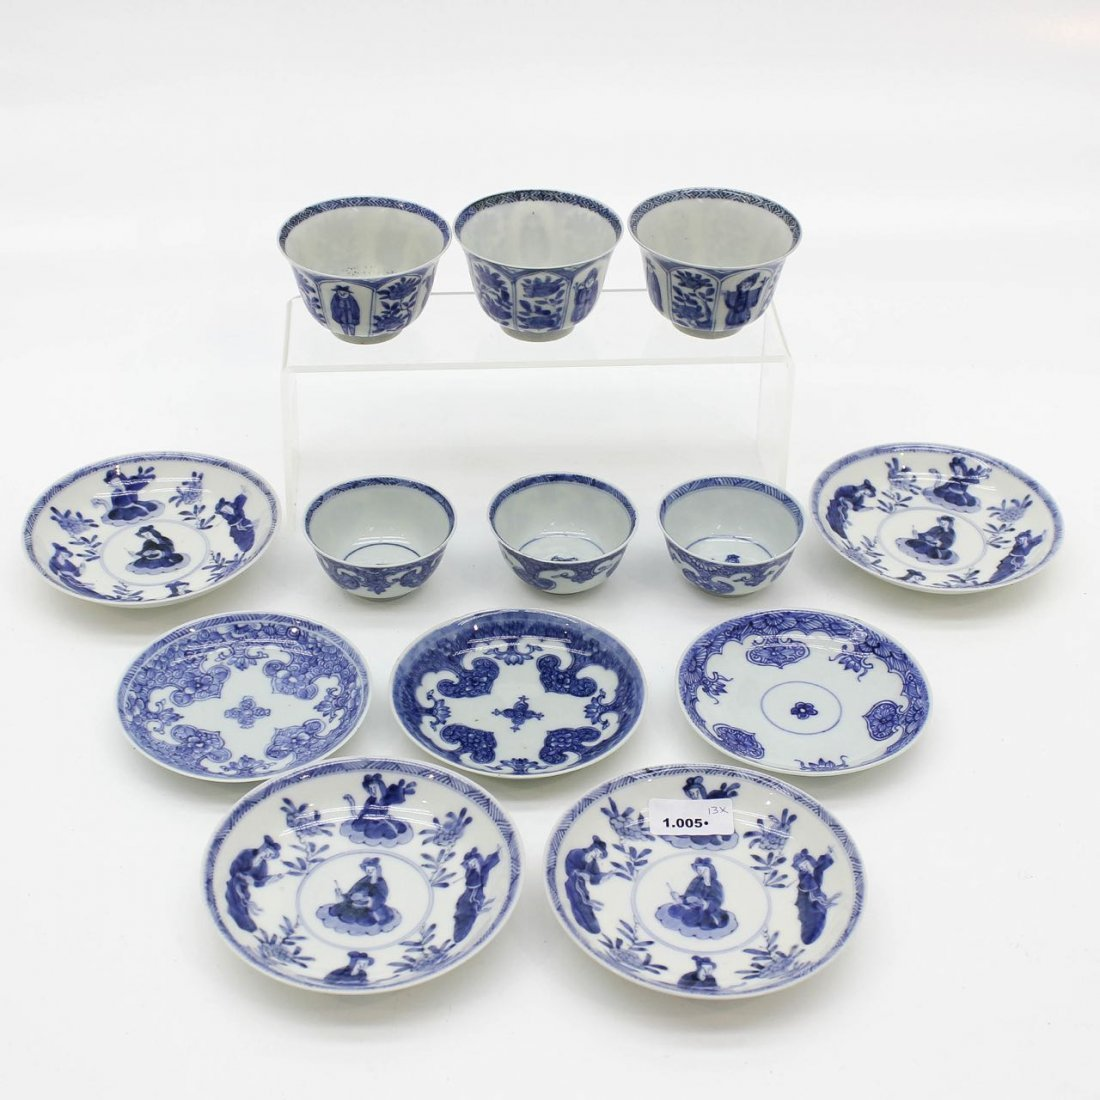 18th / 19th Century Chinese and Japanese Porcelain